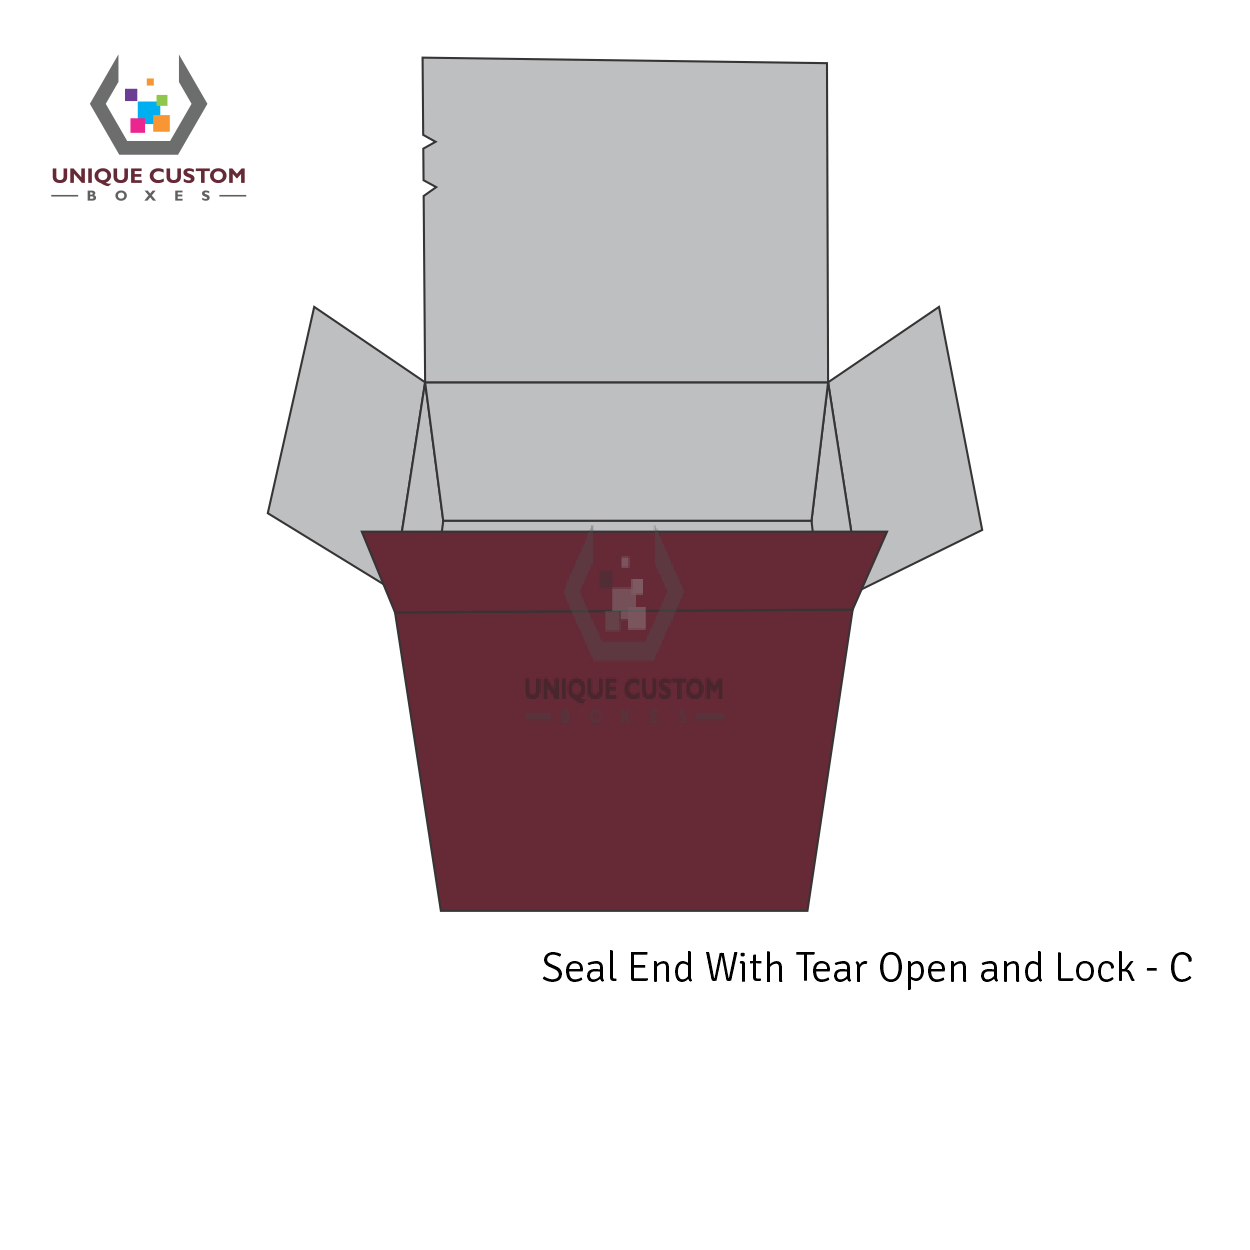 Seal End With Tear Open and Lock-2